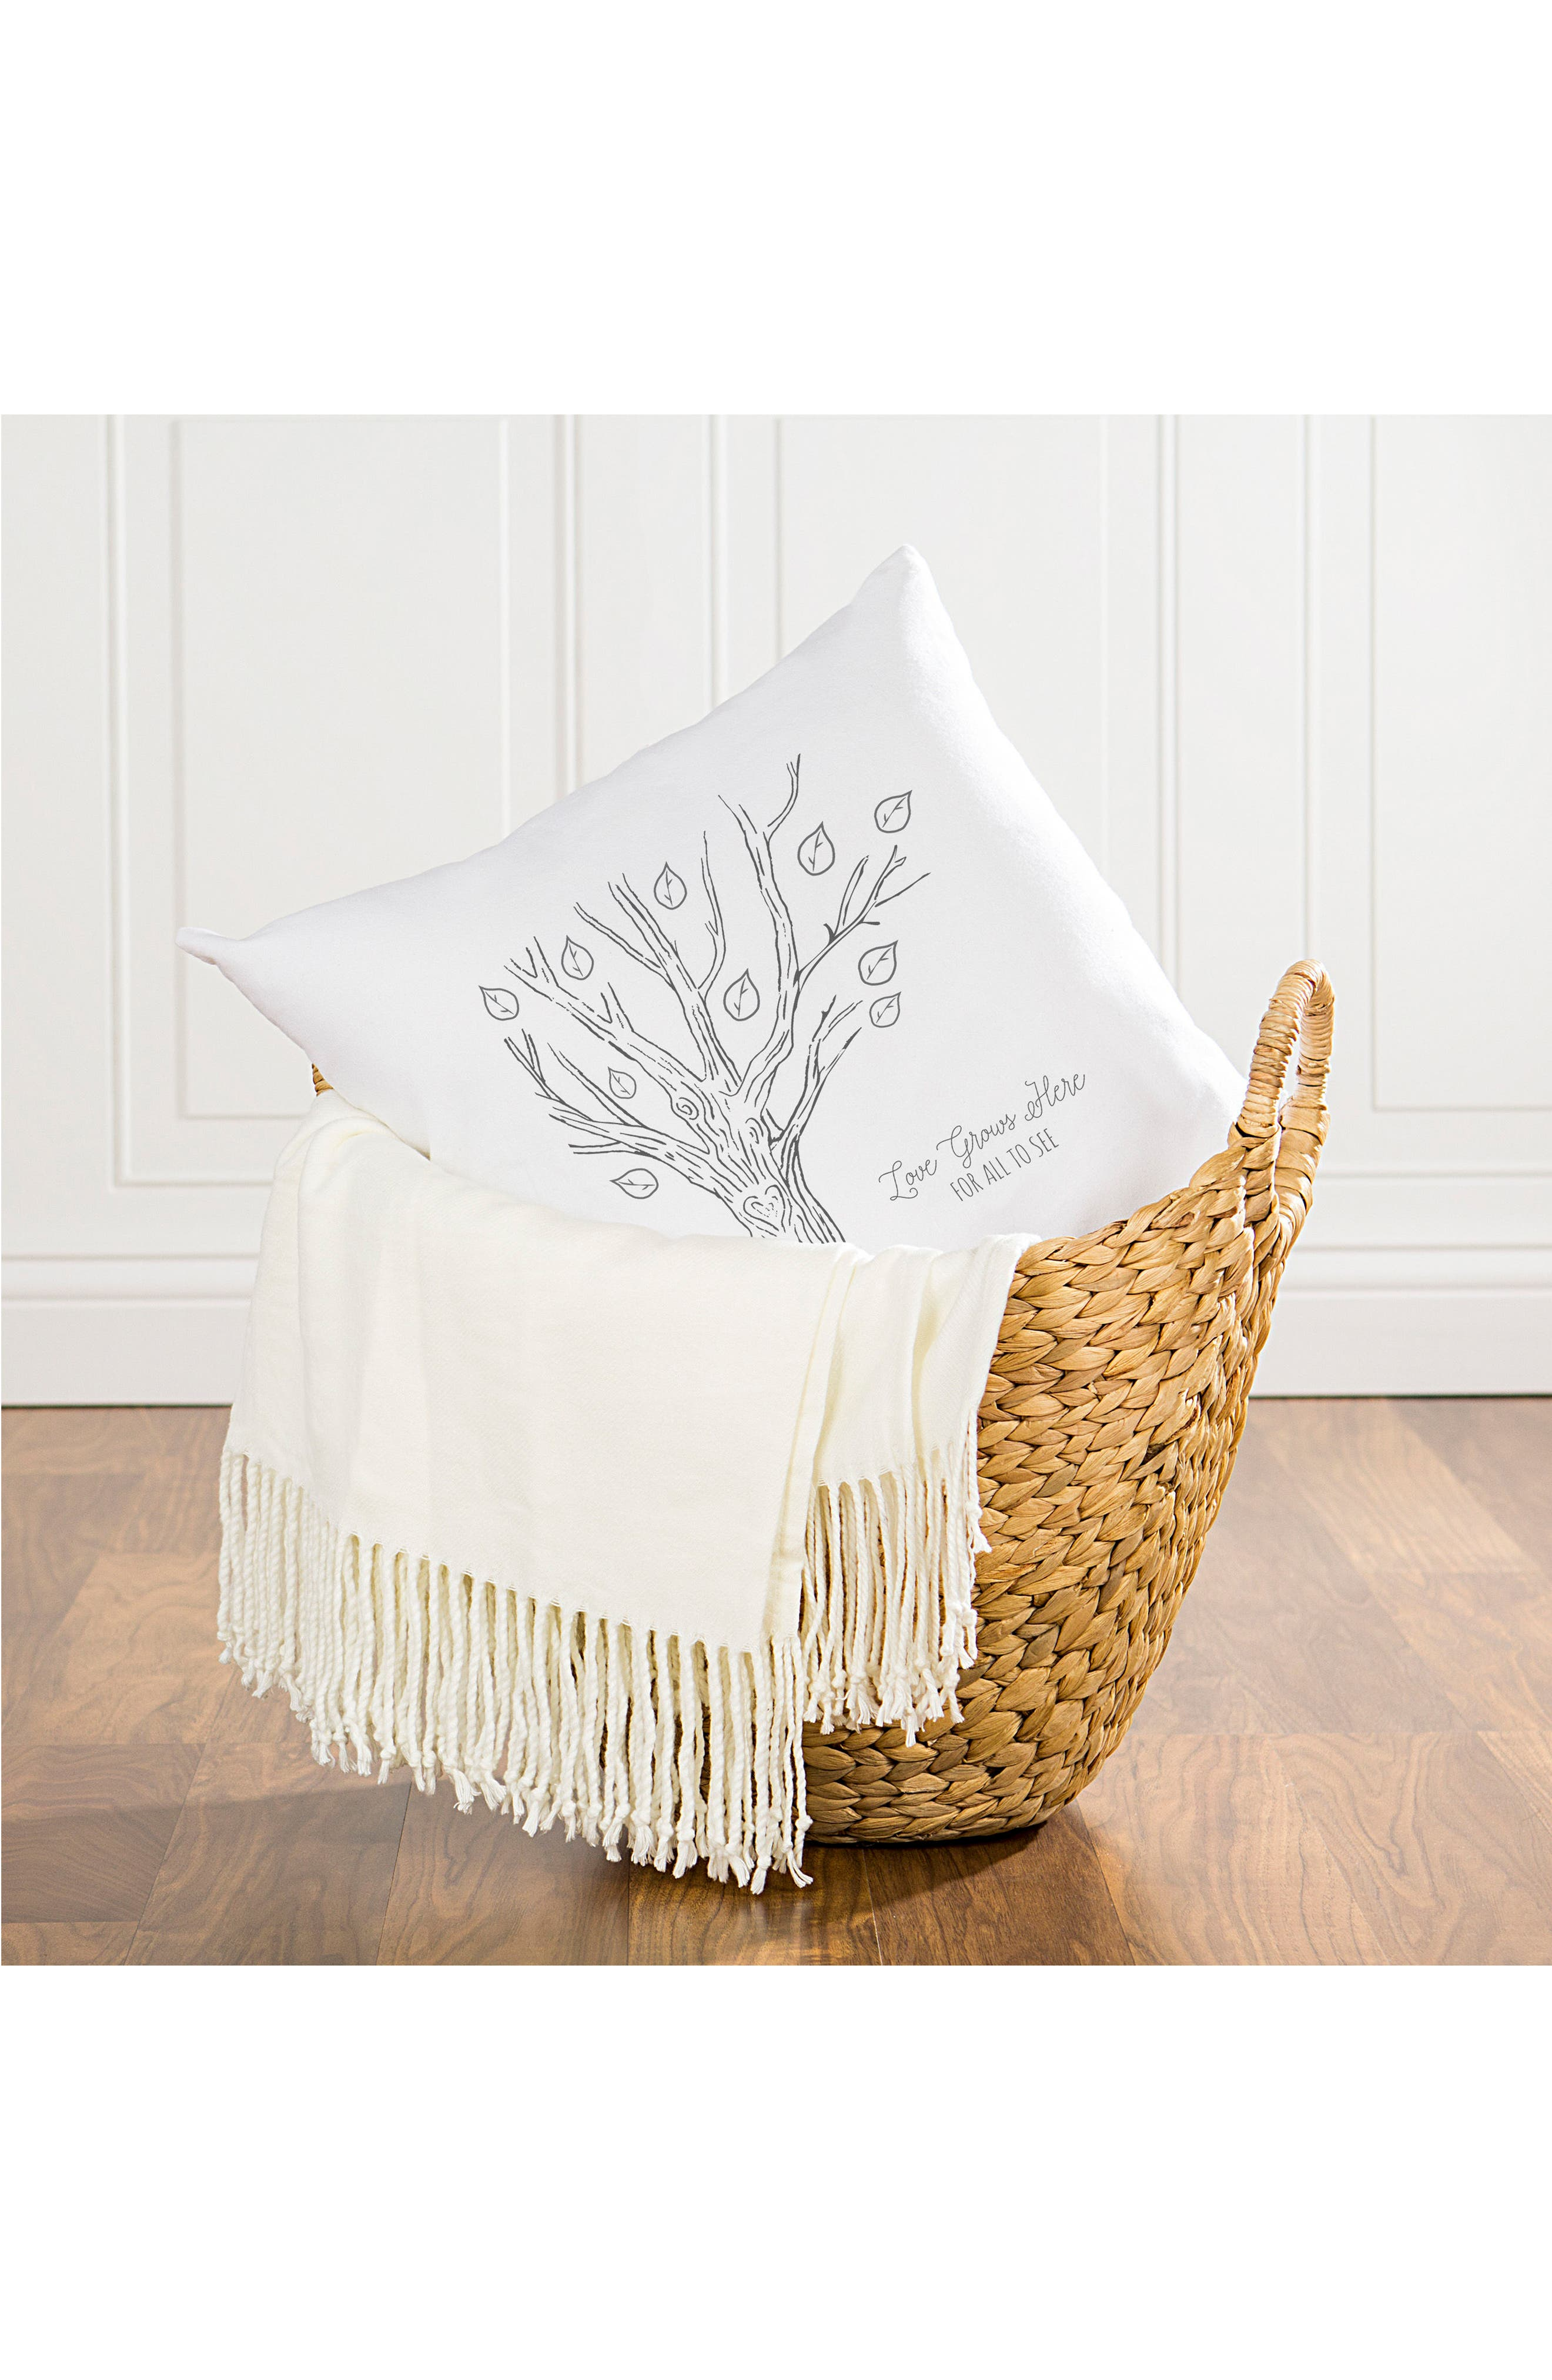 Family Tree Accent Pillow,                             Alternate thumbnail 5, color,                             001